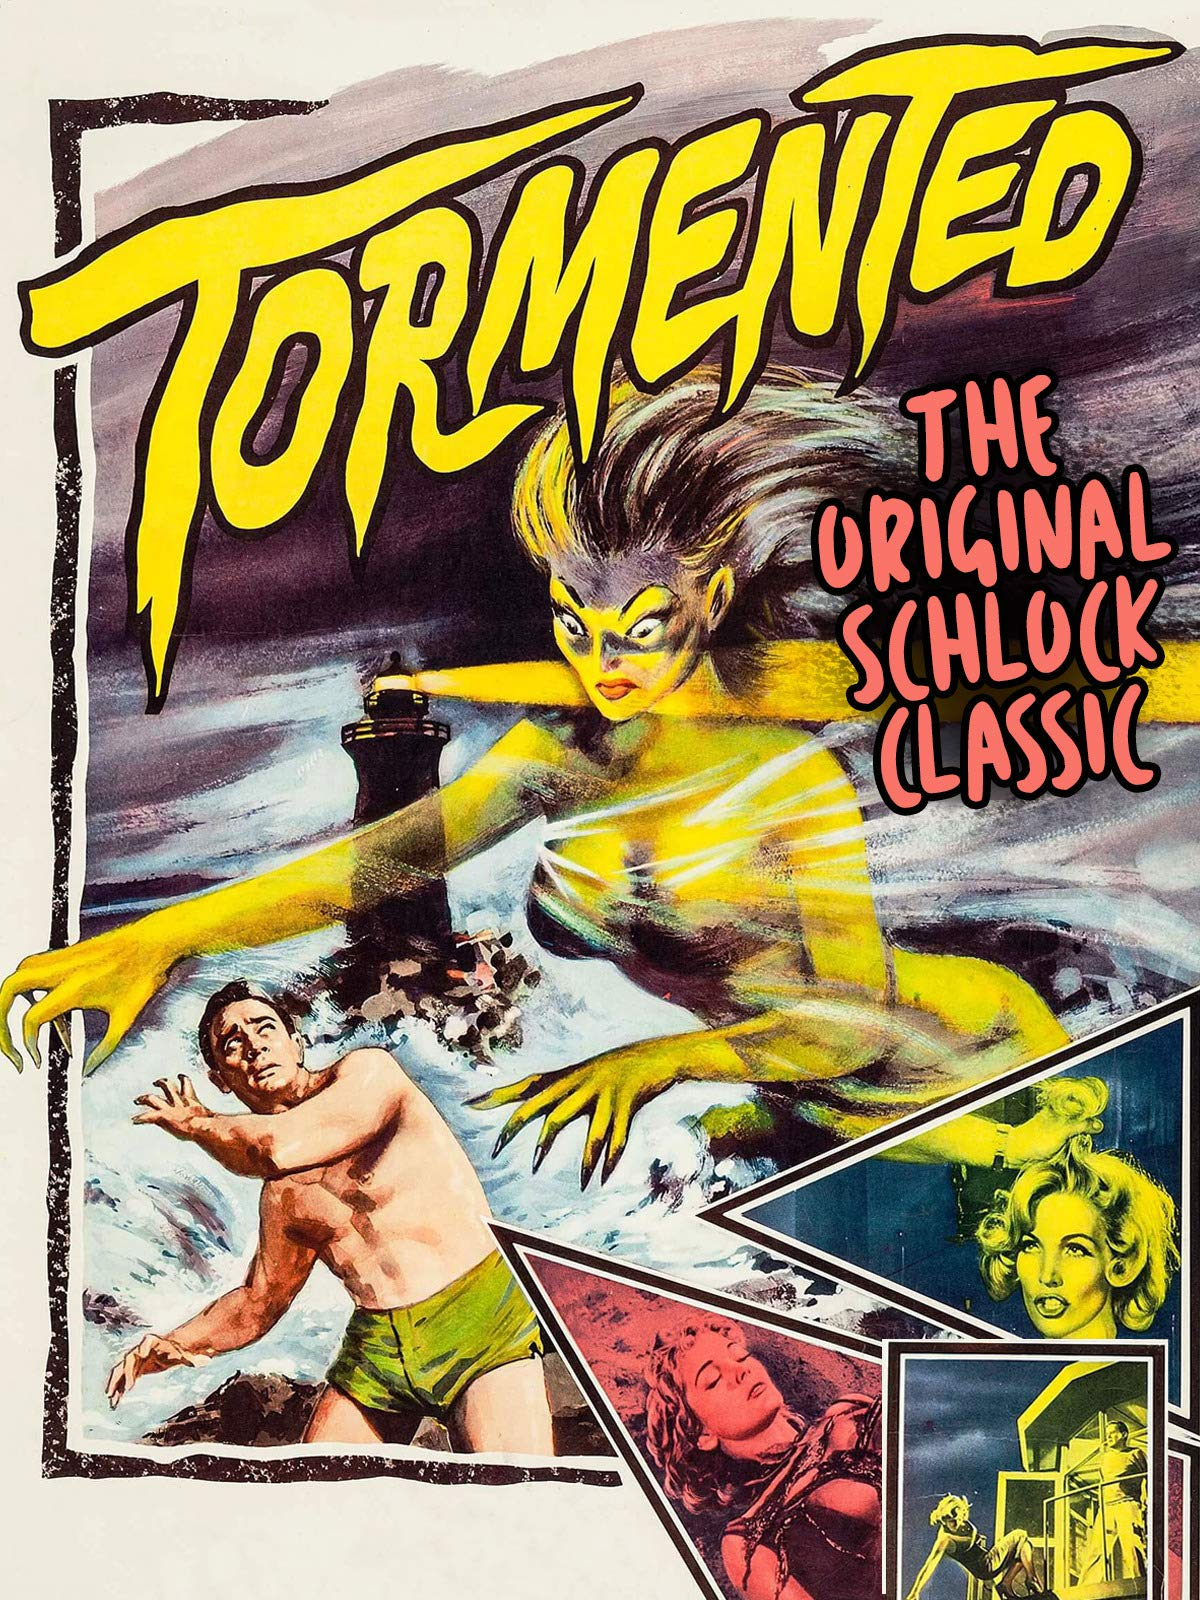 Tormented - The Original Schlock Classic